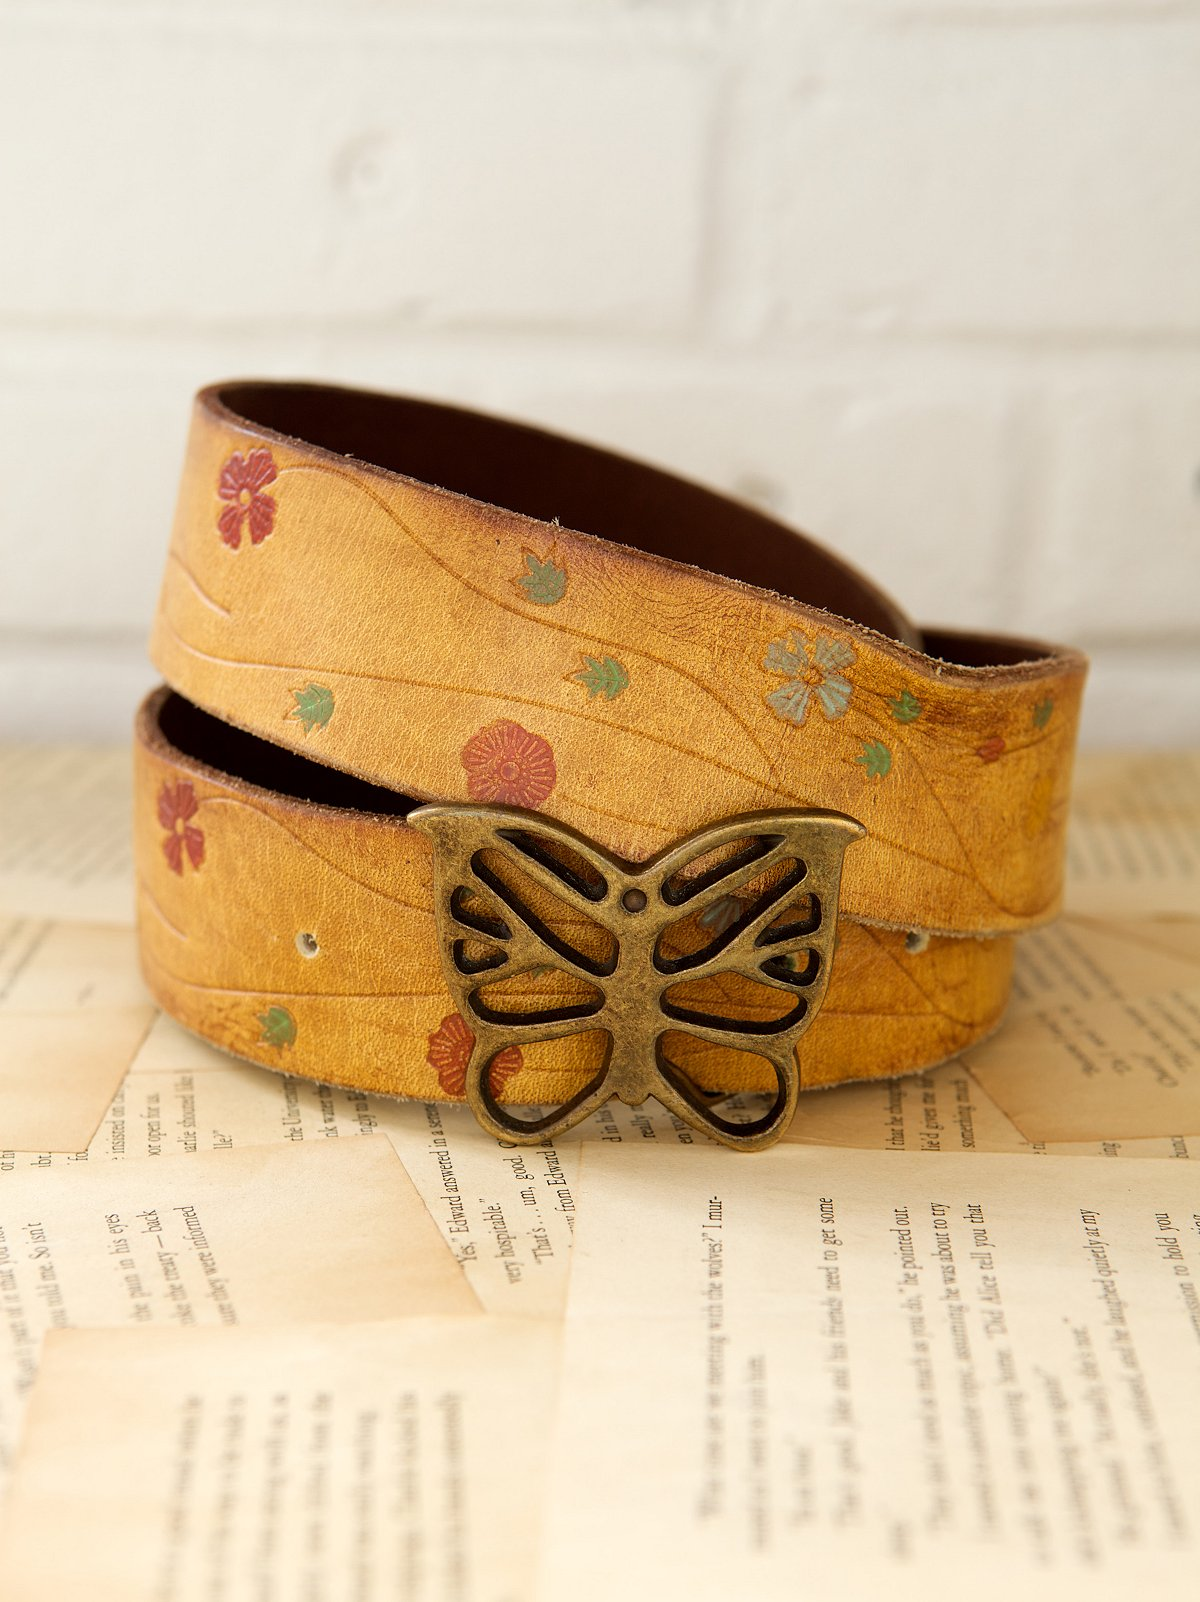 Vintage 1970s Monarch Belt